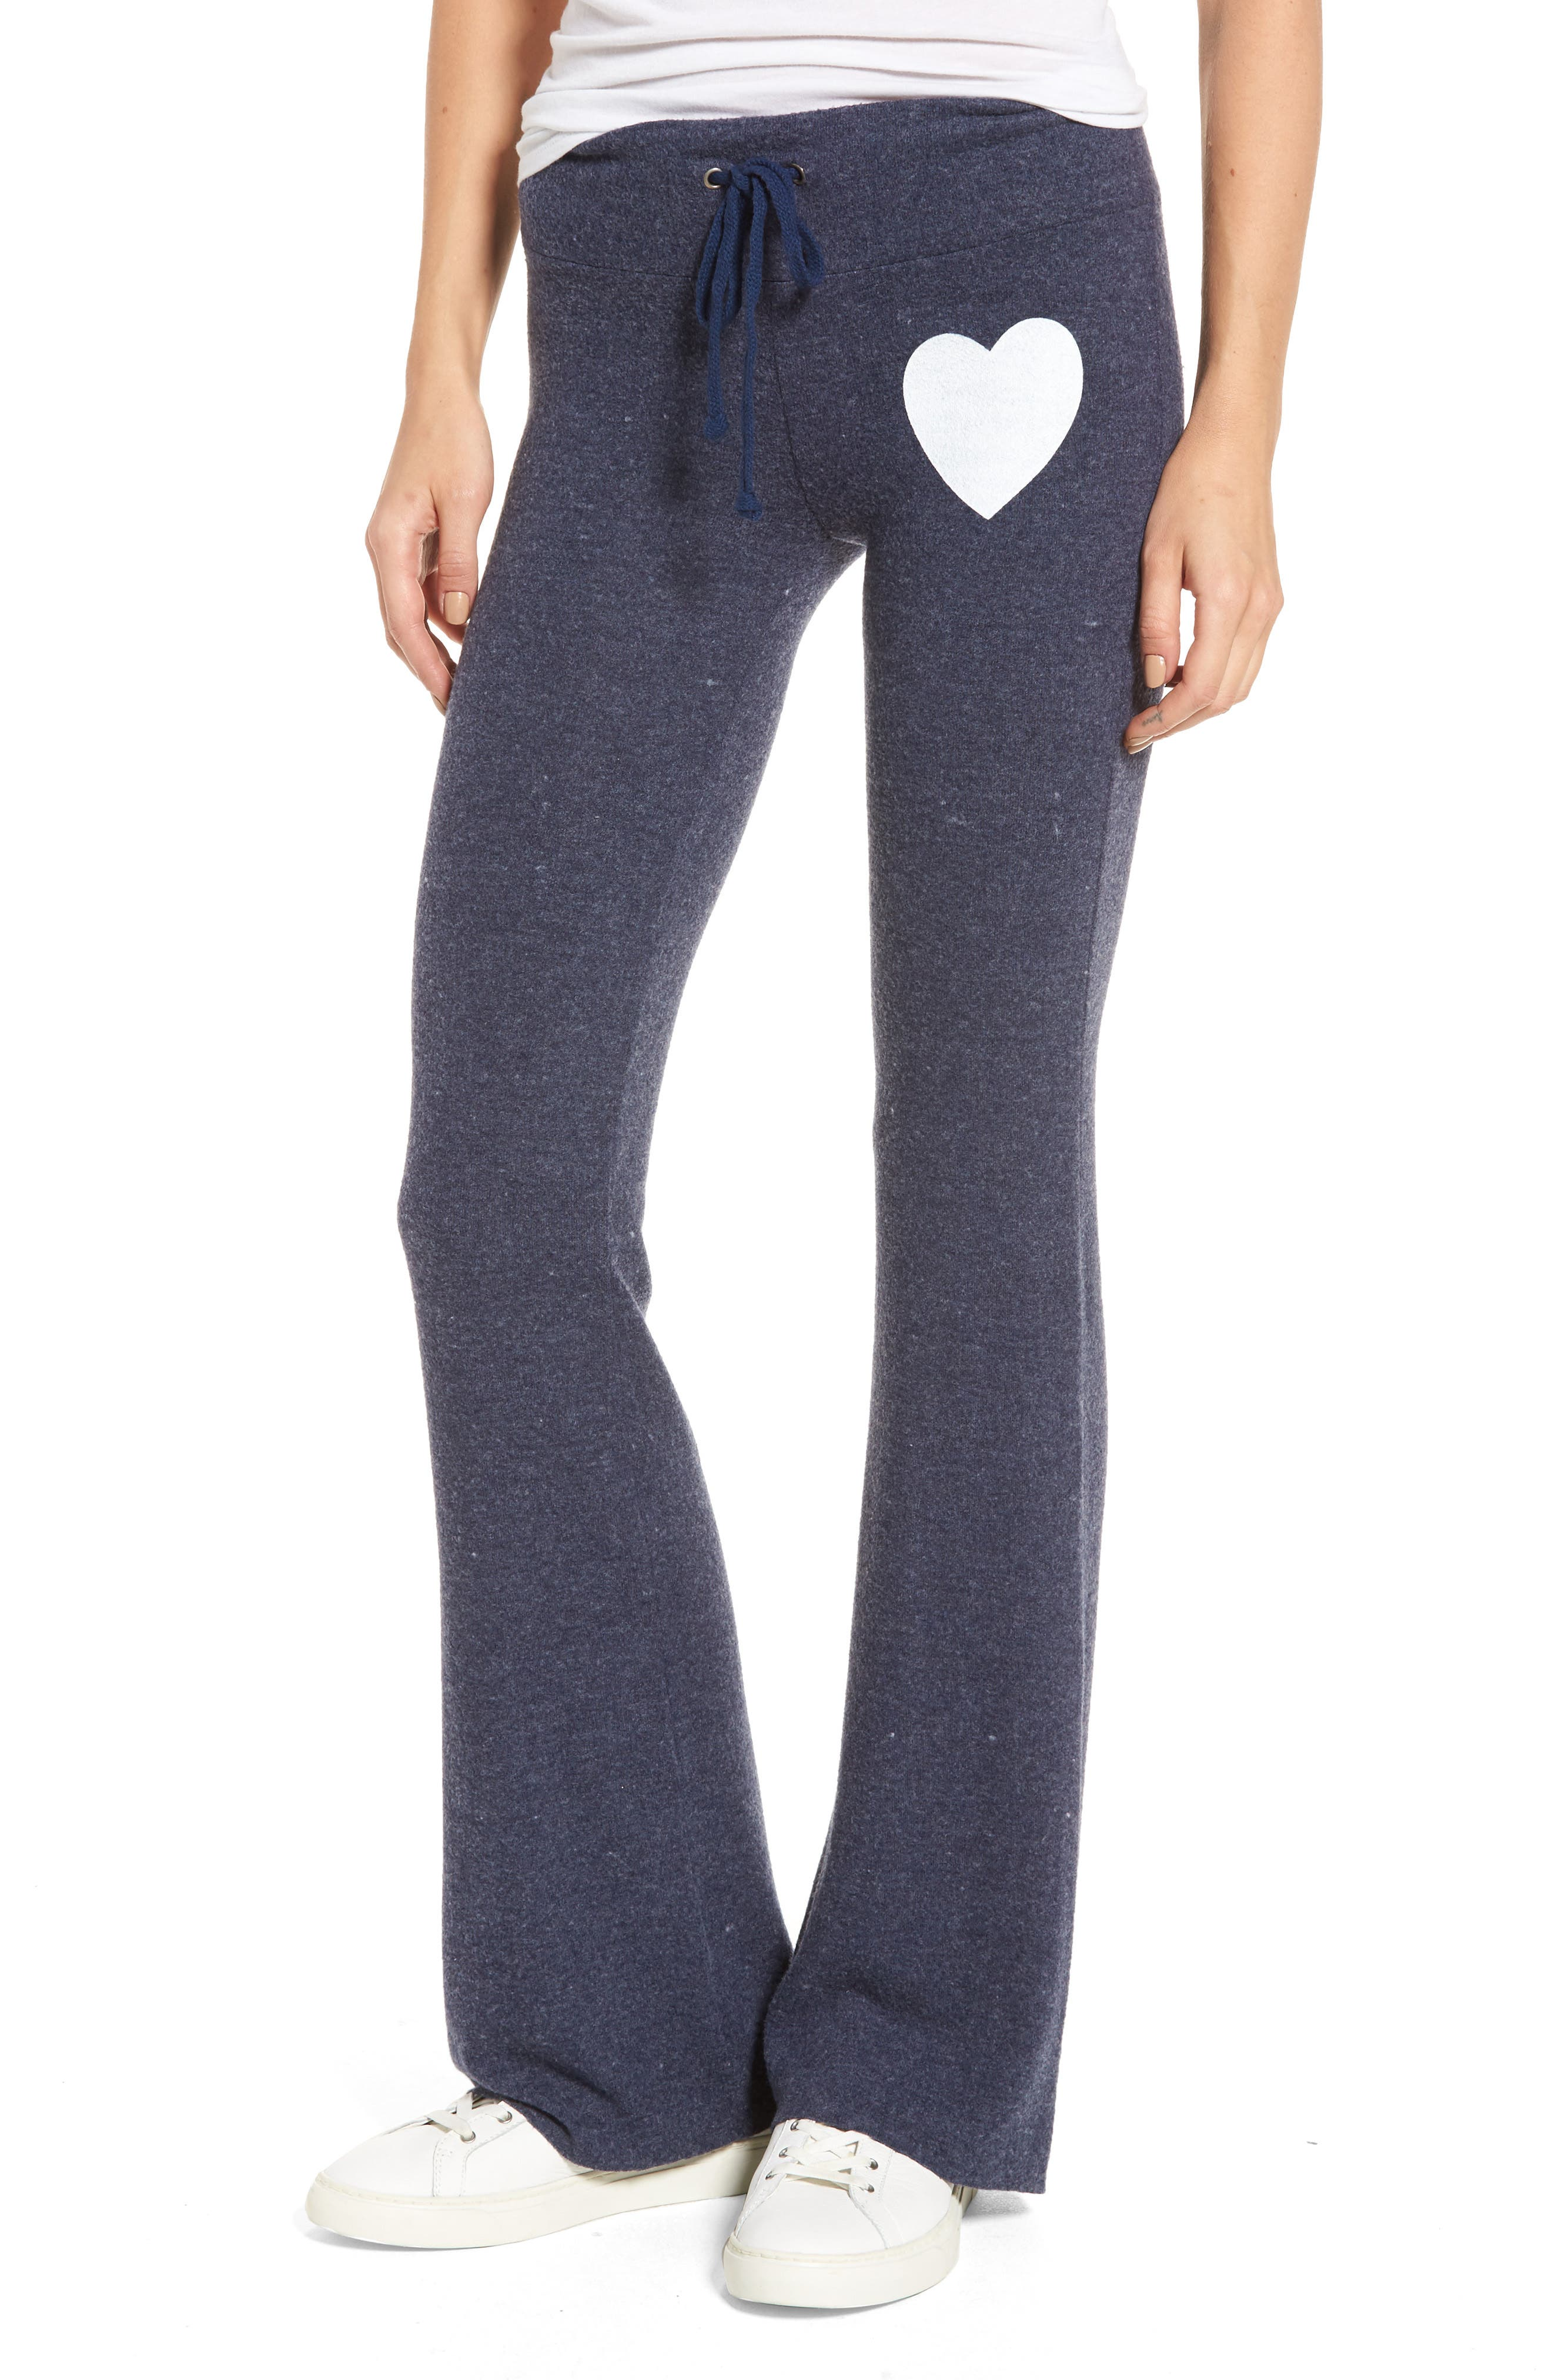 Eat Well Track Pants,                         Main,                         color, Dark Blue